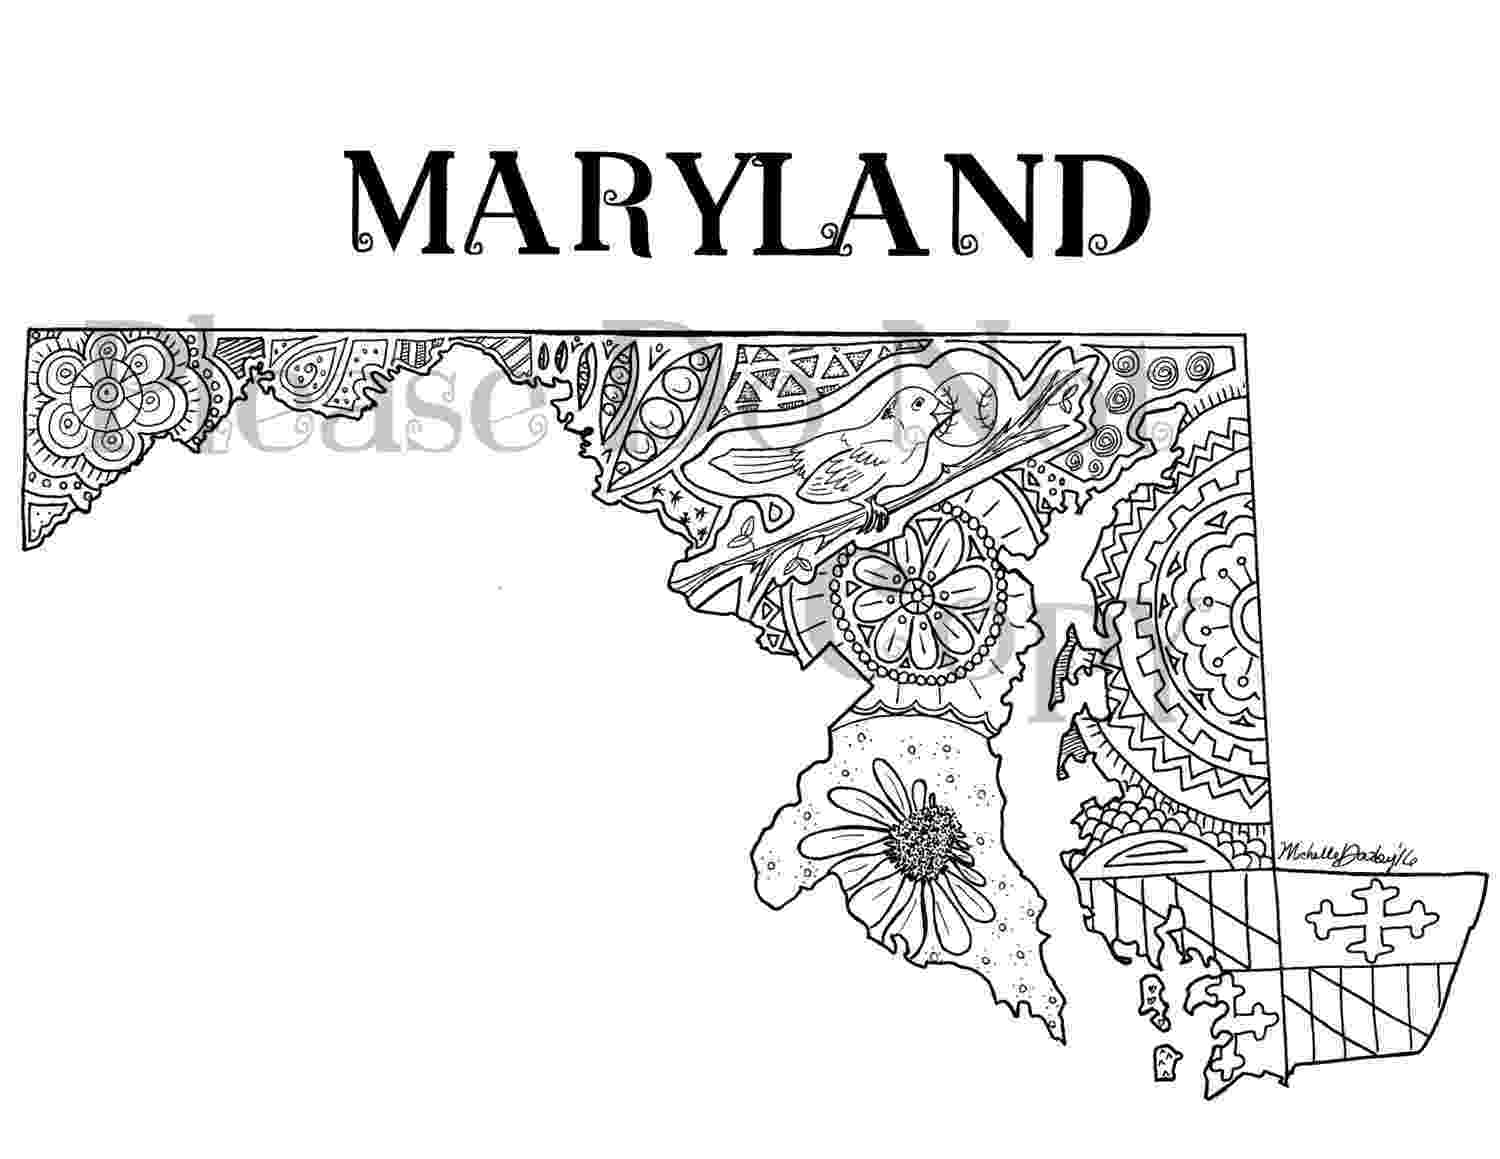 maryland flag coloring page maryland state flag coloring page coloring home maryland coloring page flag